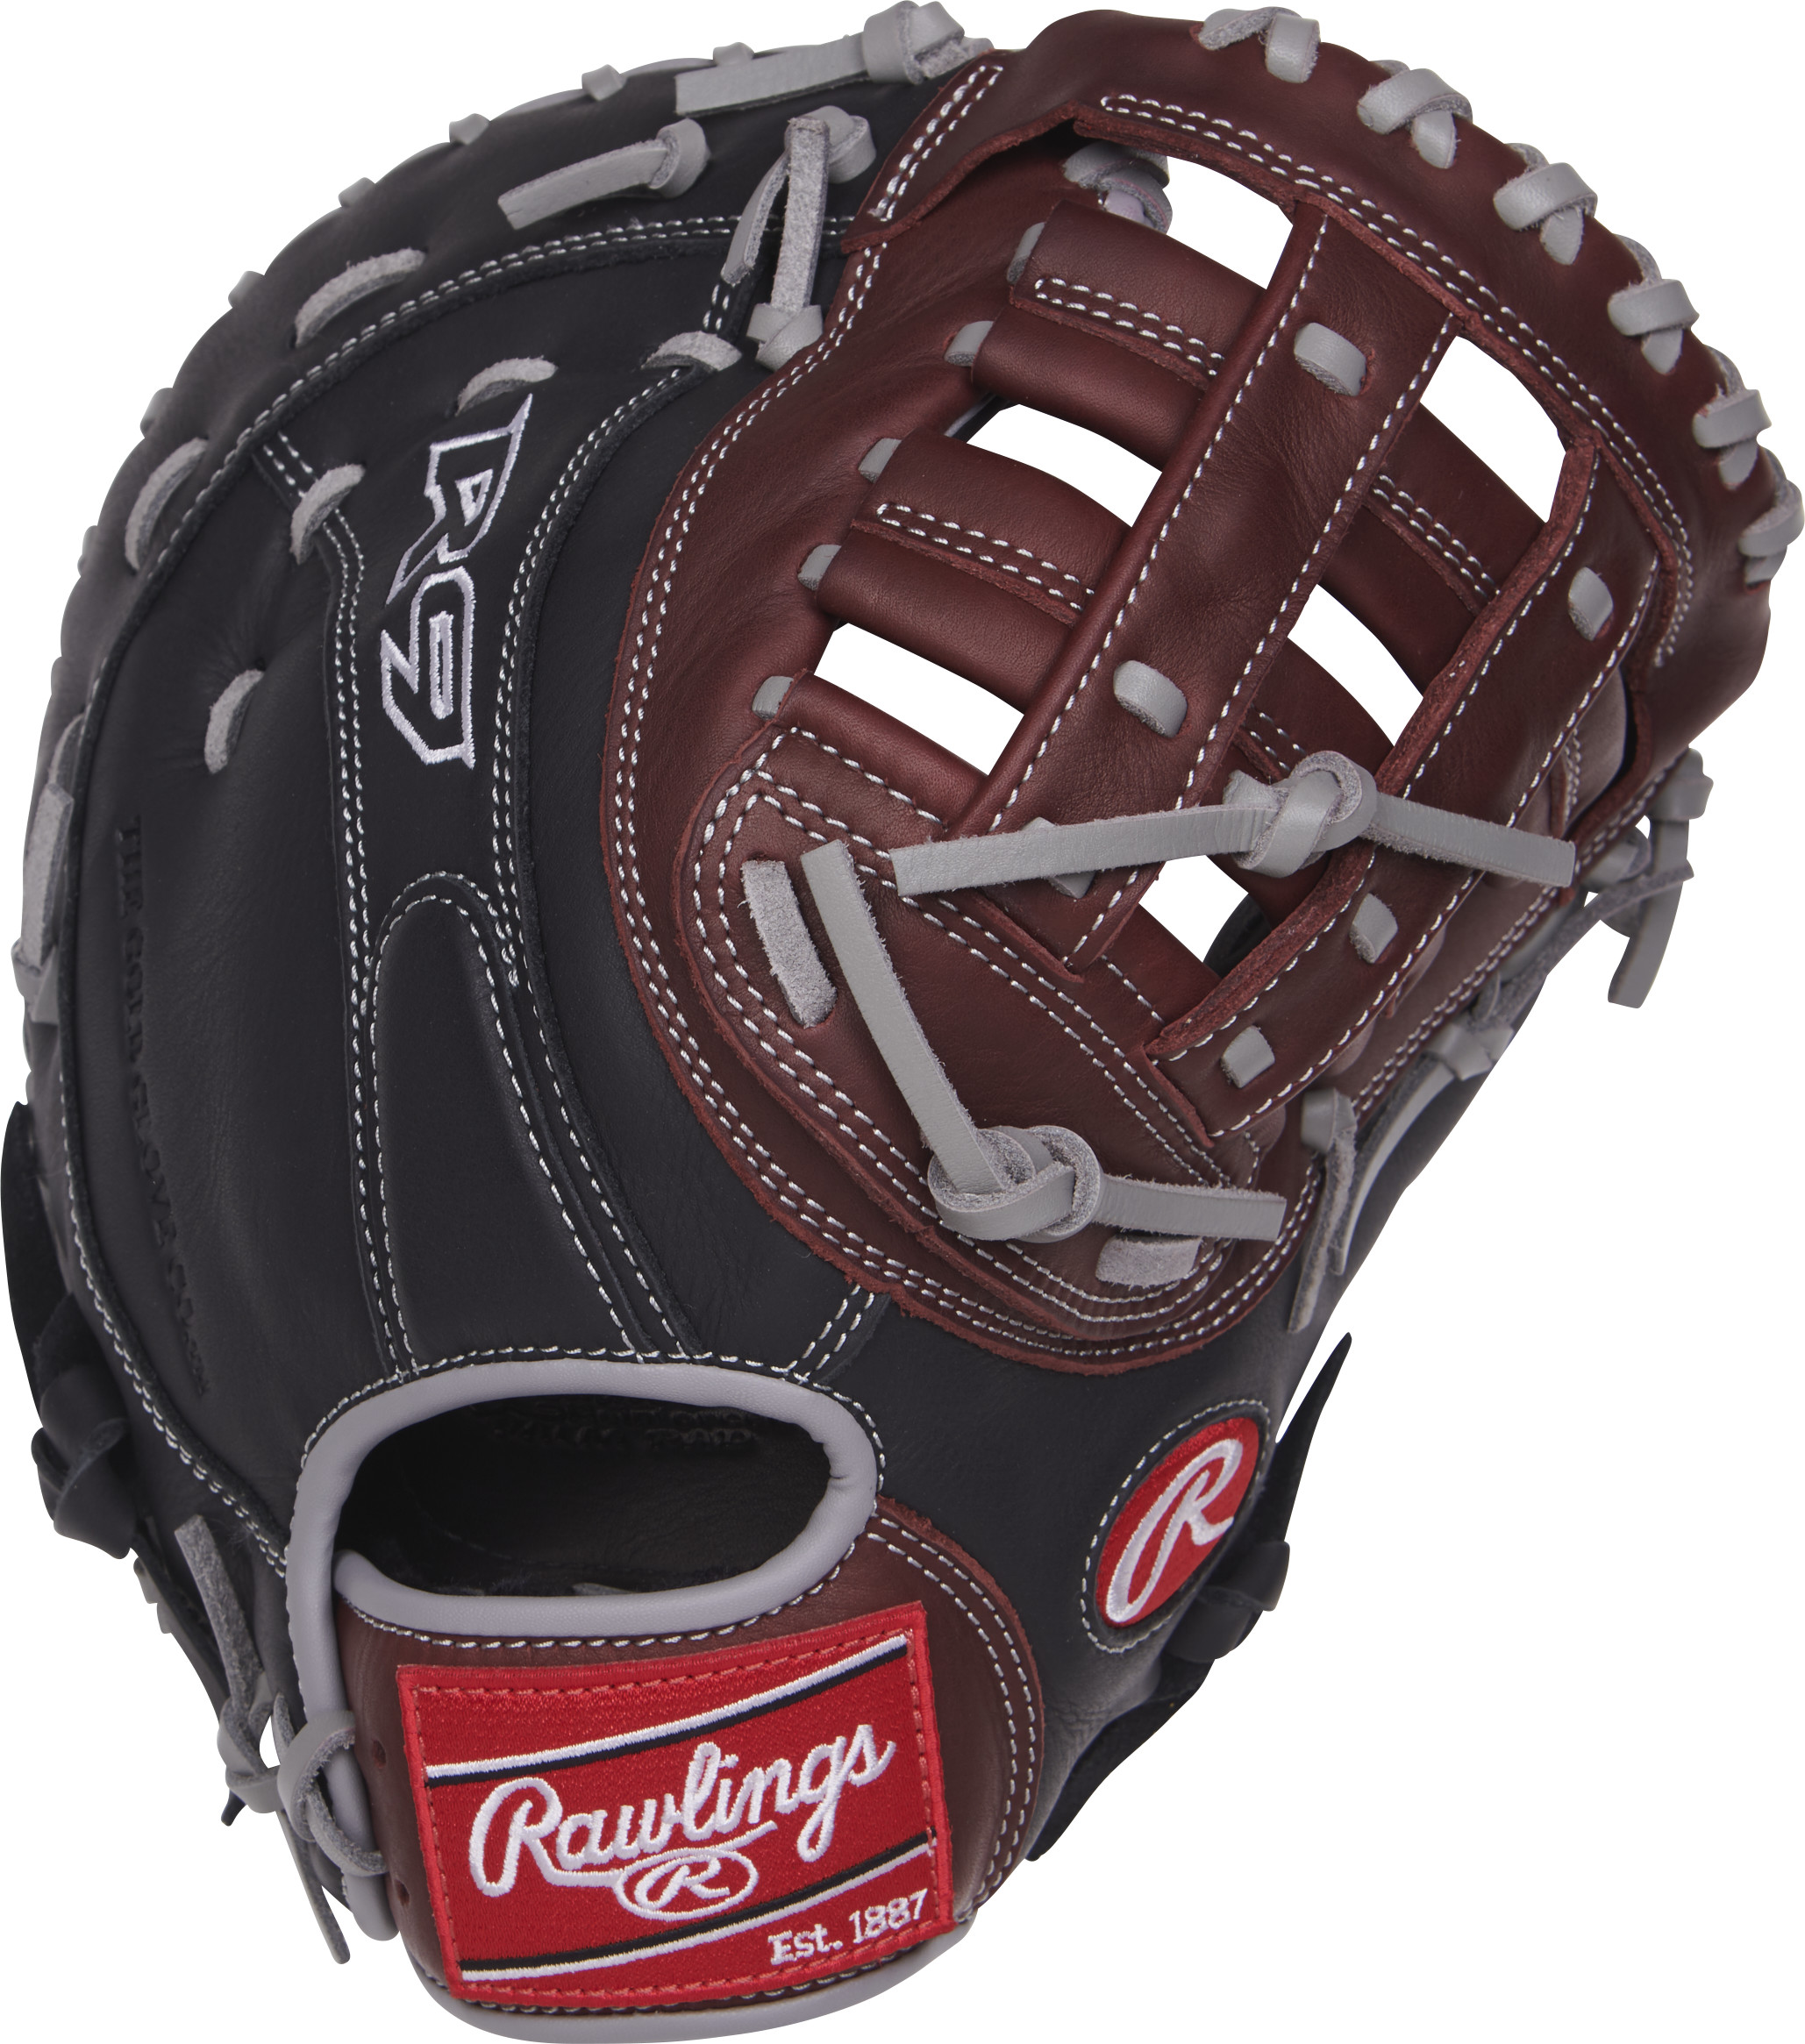 http://www.bestbatdeals.com/images/gloves/rawlings/R9FM18BSG-2.jpg